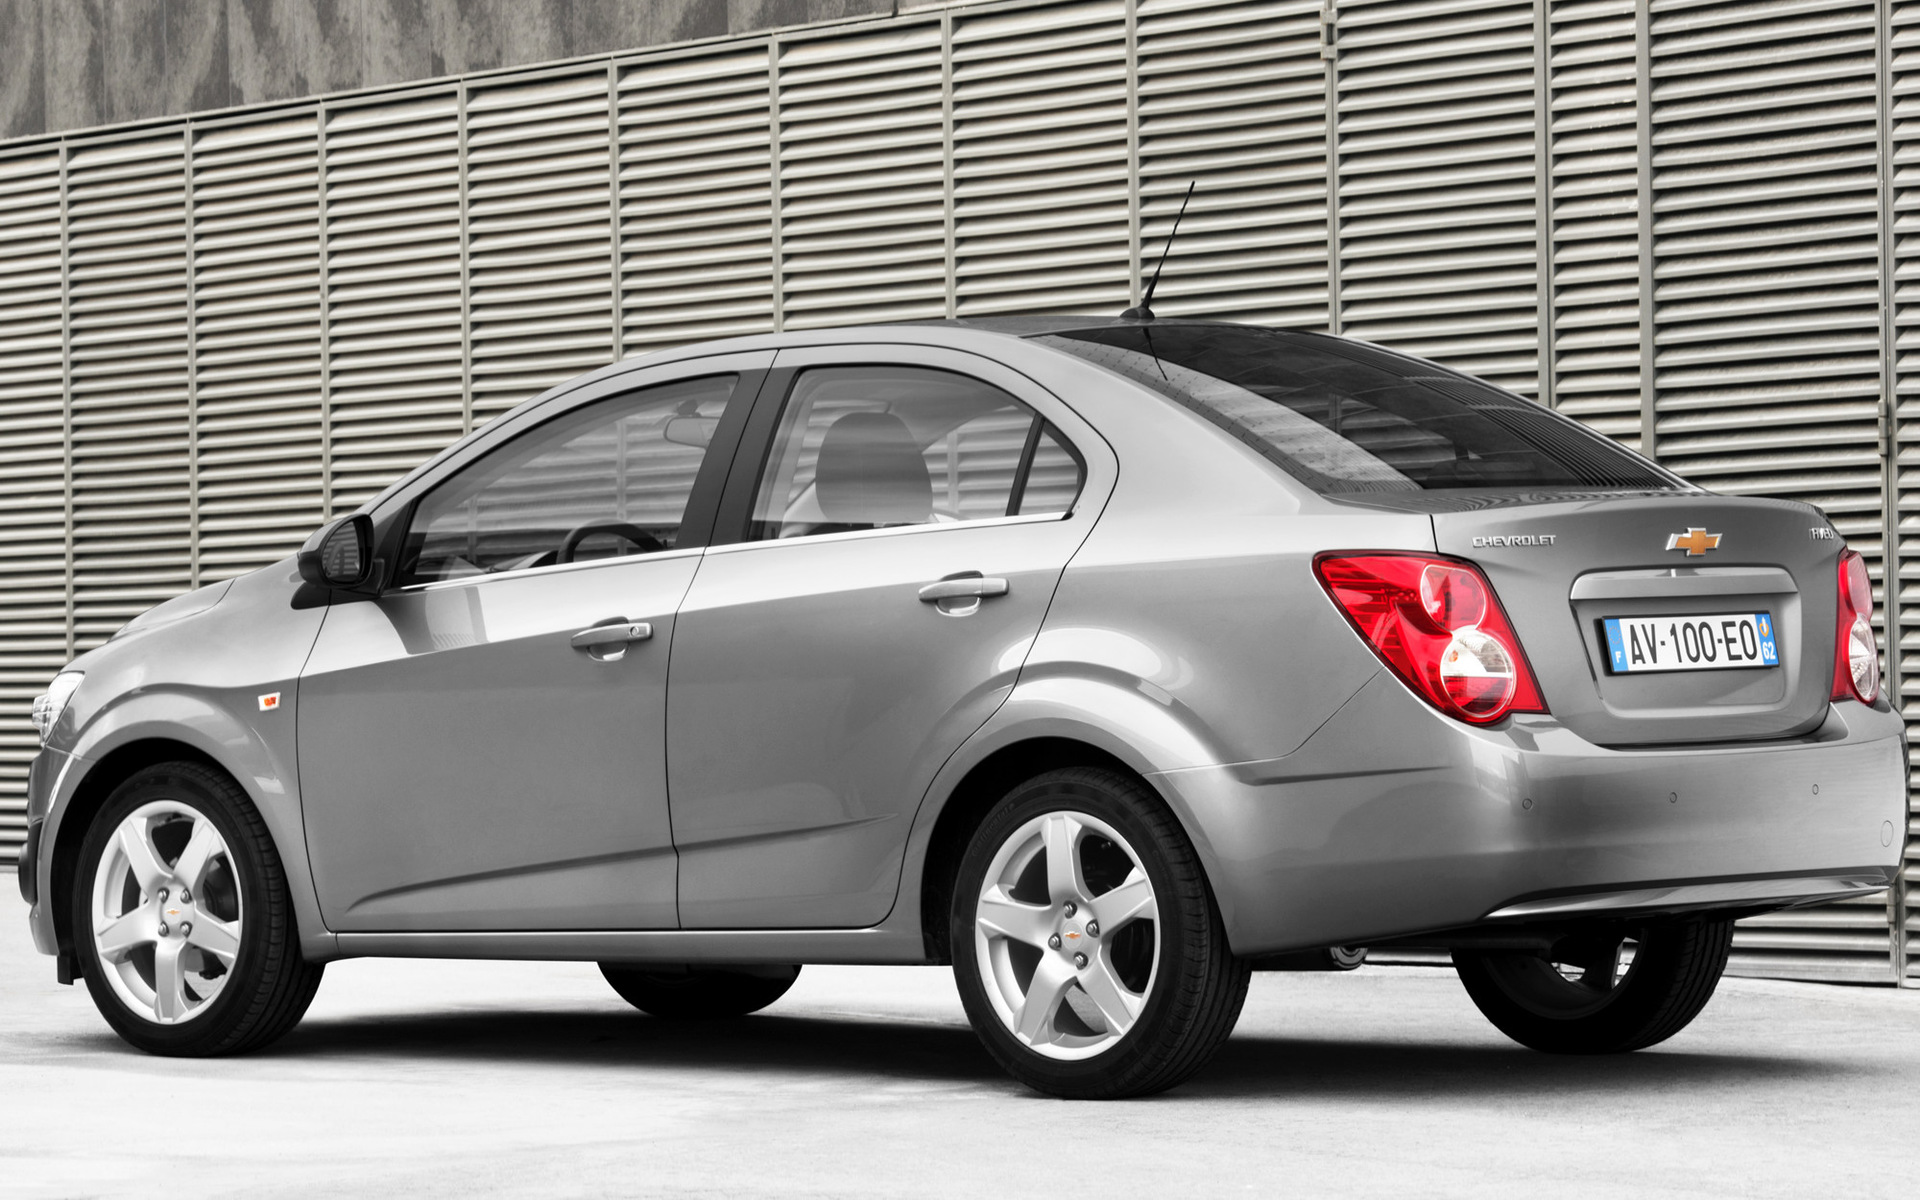 Chevrolet Aveo Sedan (2011) Wallpapers and HD Images